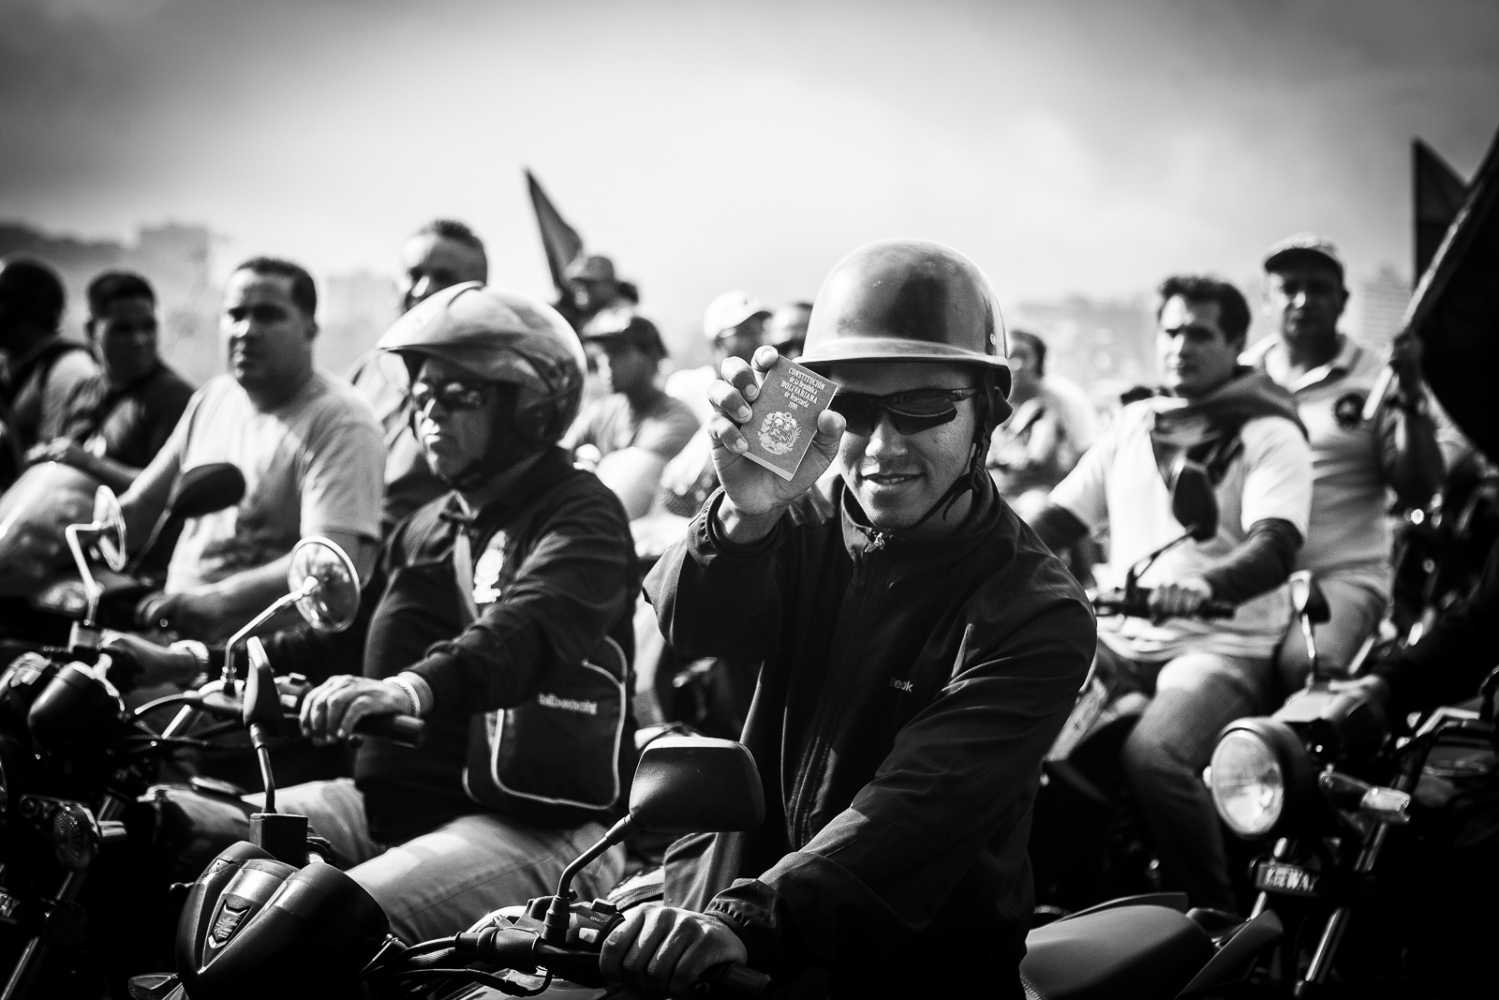 Art and Documentary Photography - Loading EL-2013-Caracas-58.jpg